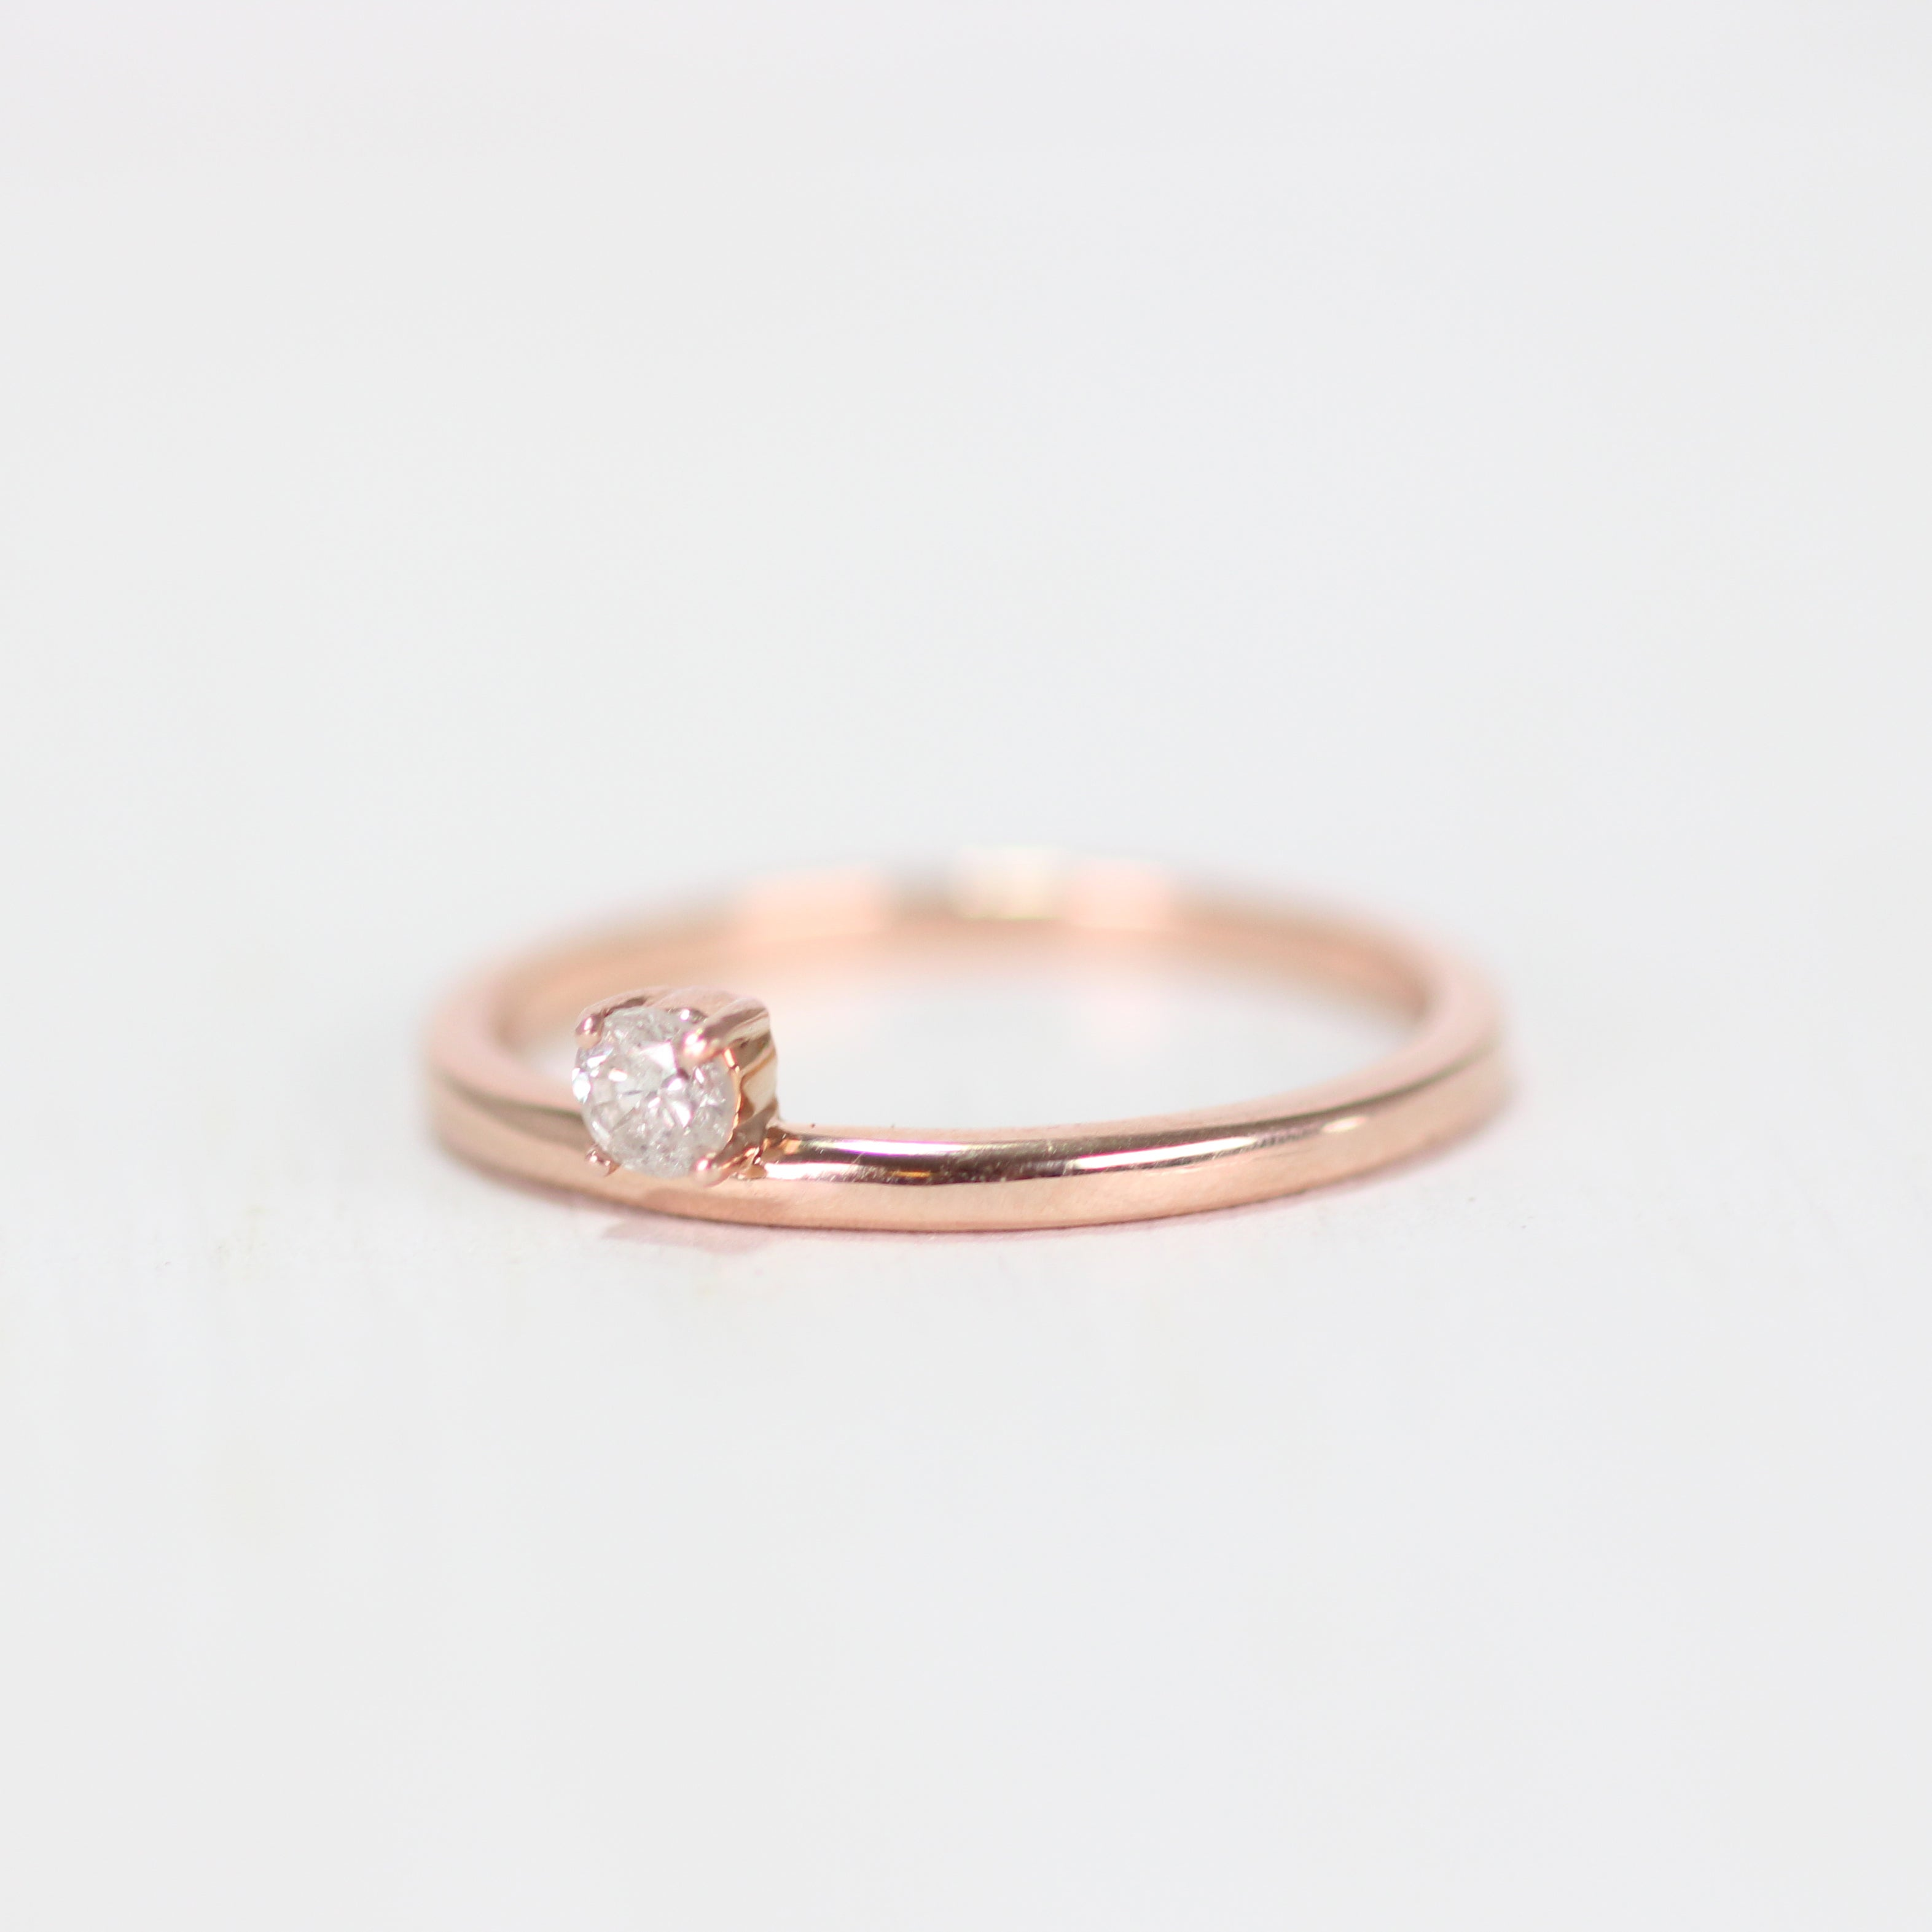 Najeal Ring - Asymmetrical Solitaire Diamond Ring in 14k Rose Gold